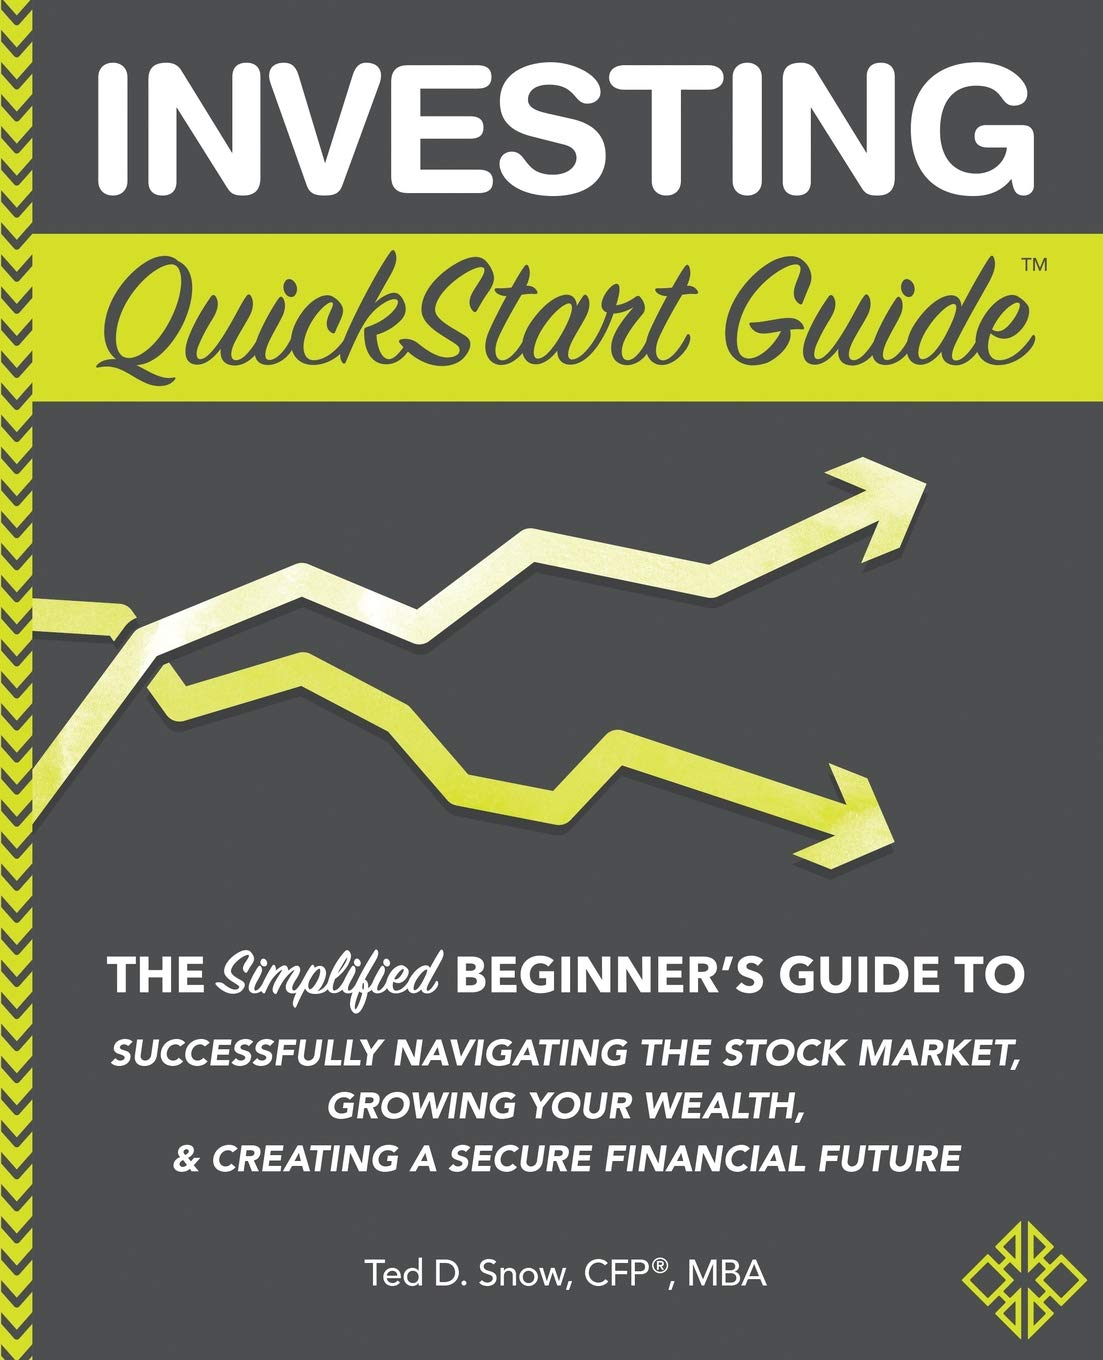 Amazon com: Investing QuickStart Guide: The Simplified